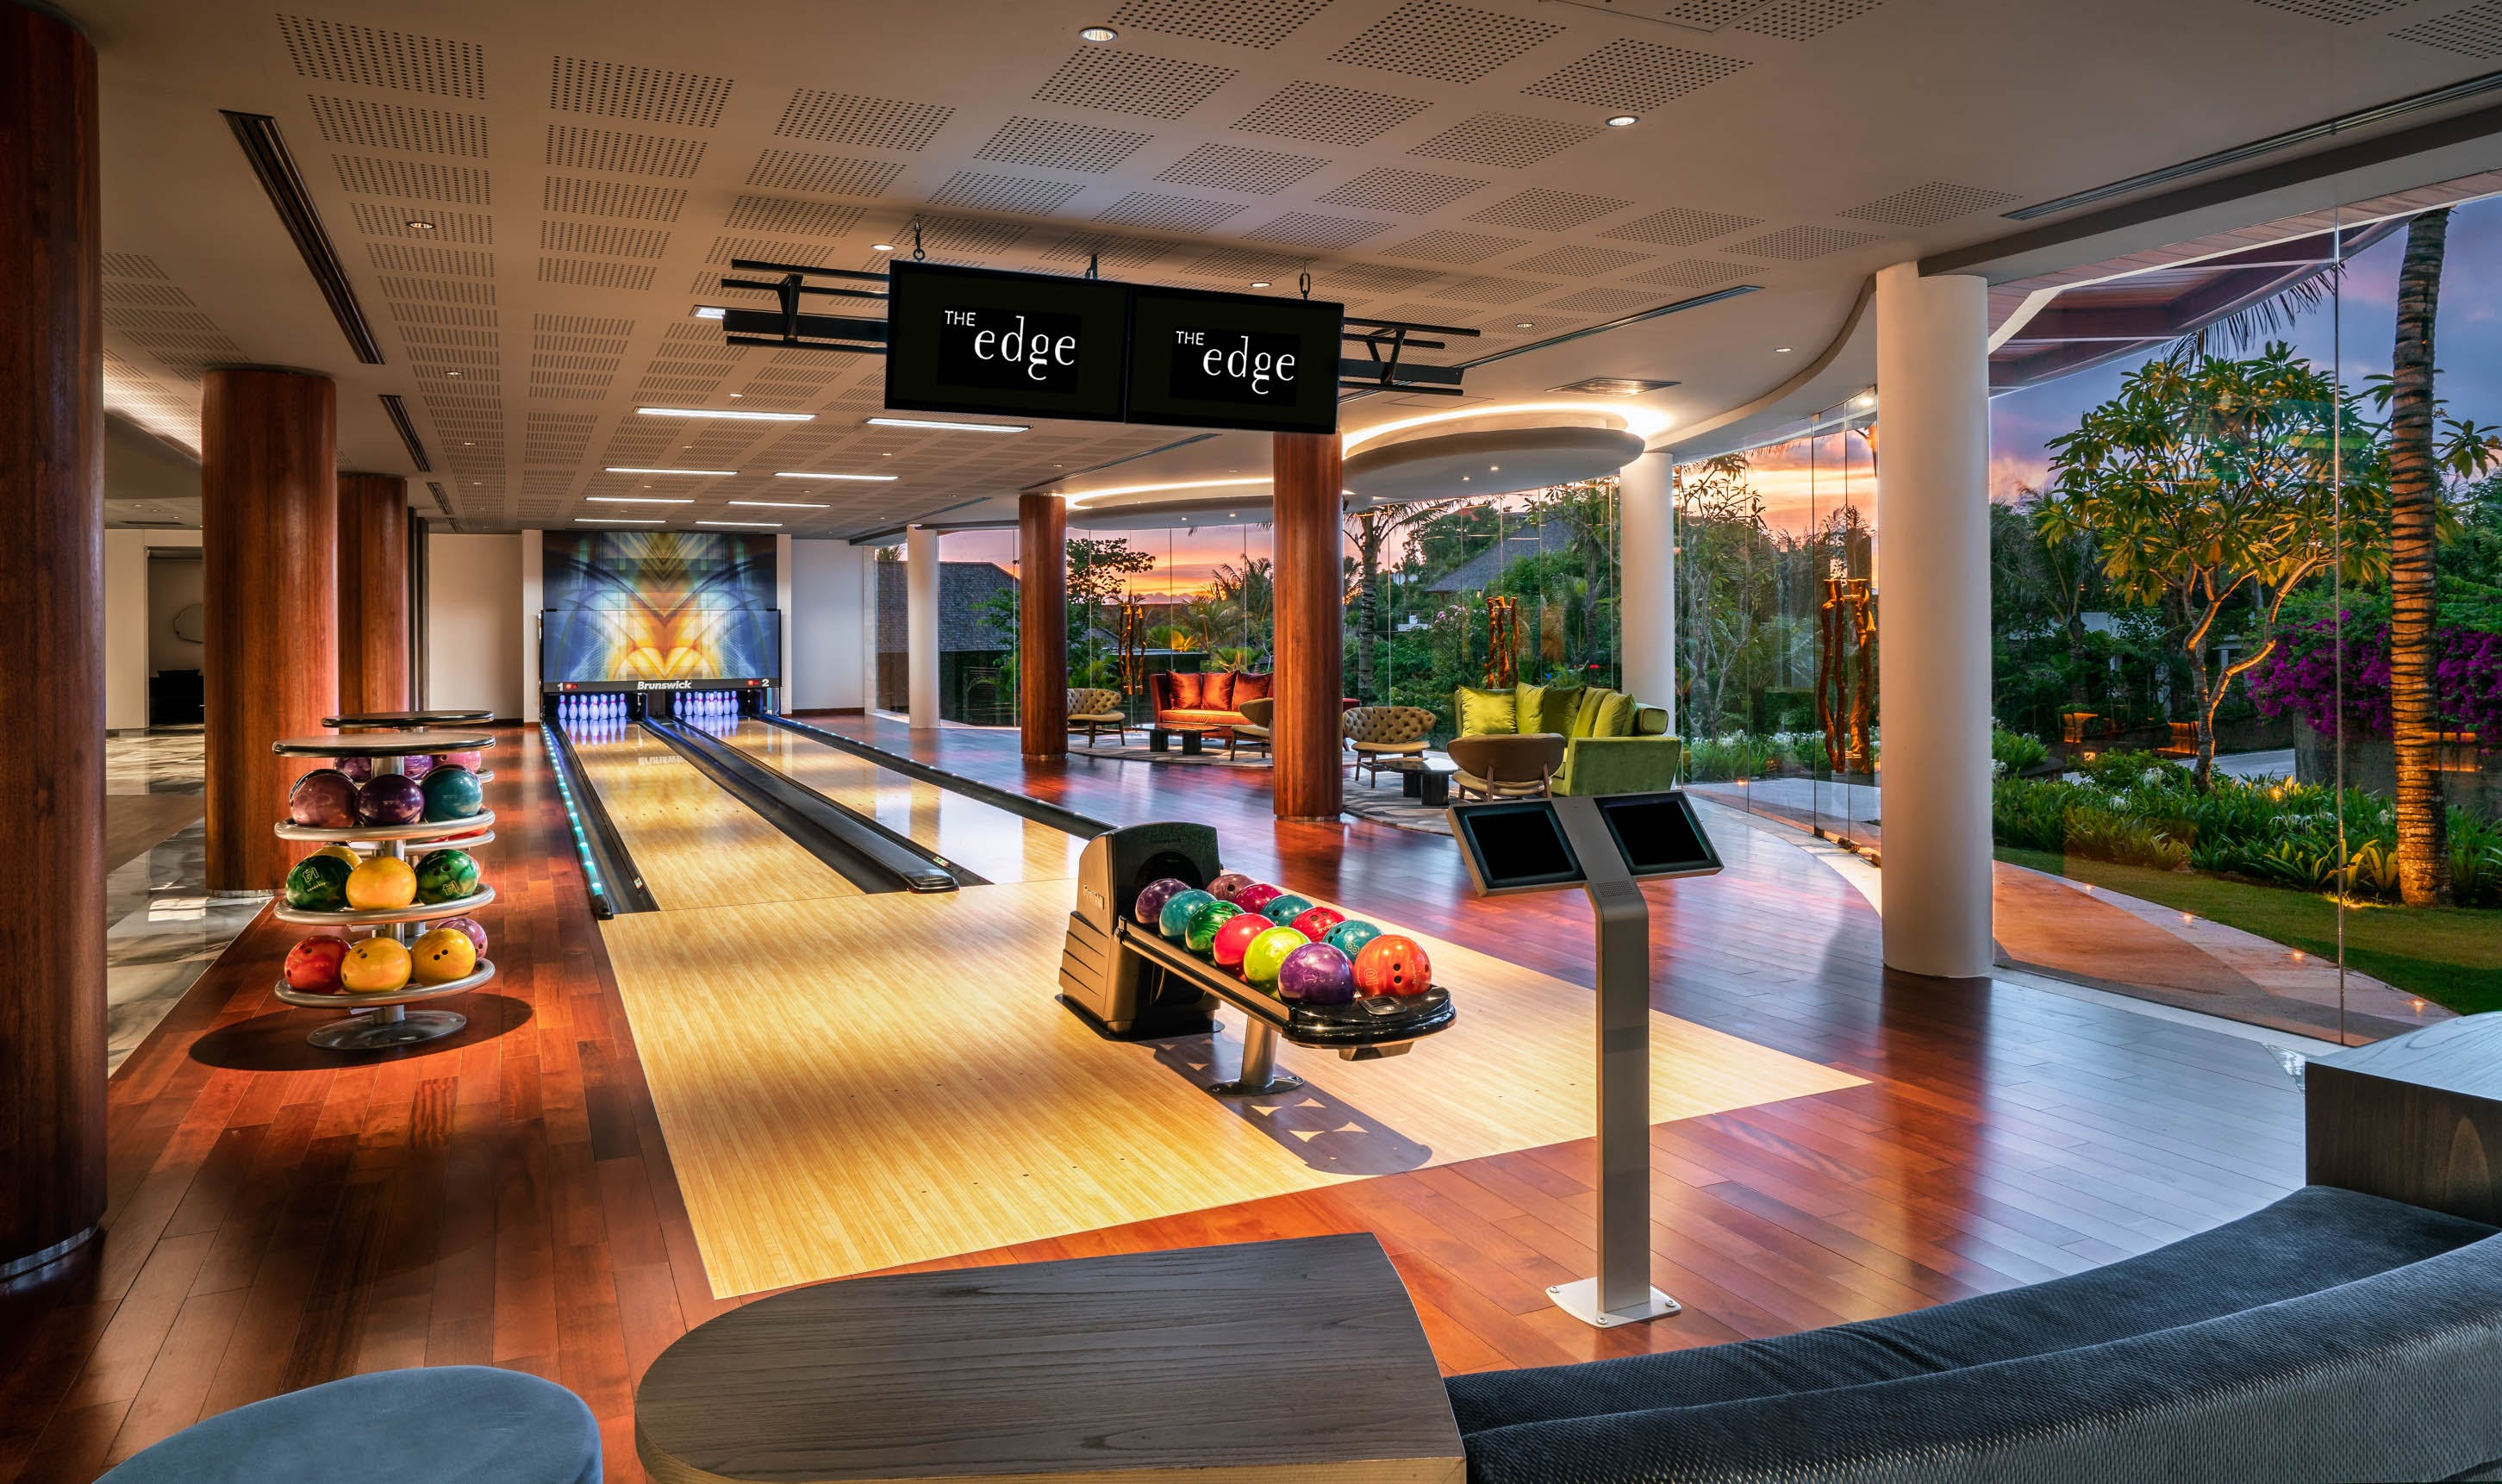 The Club Private Bowling lanes